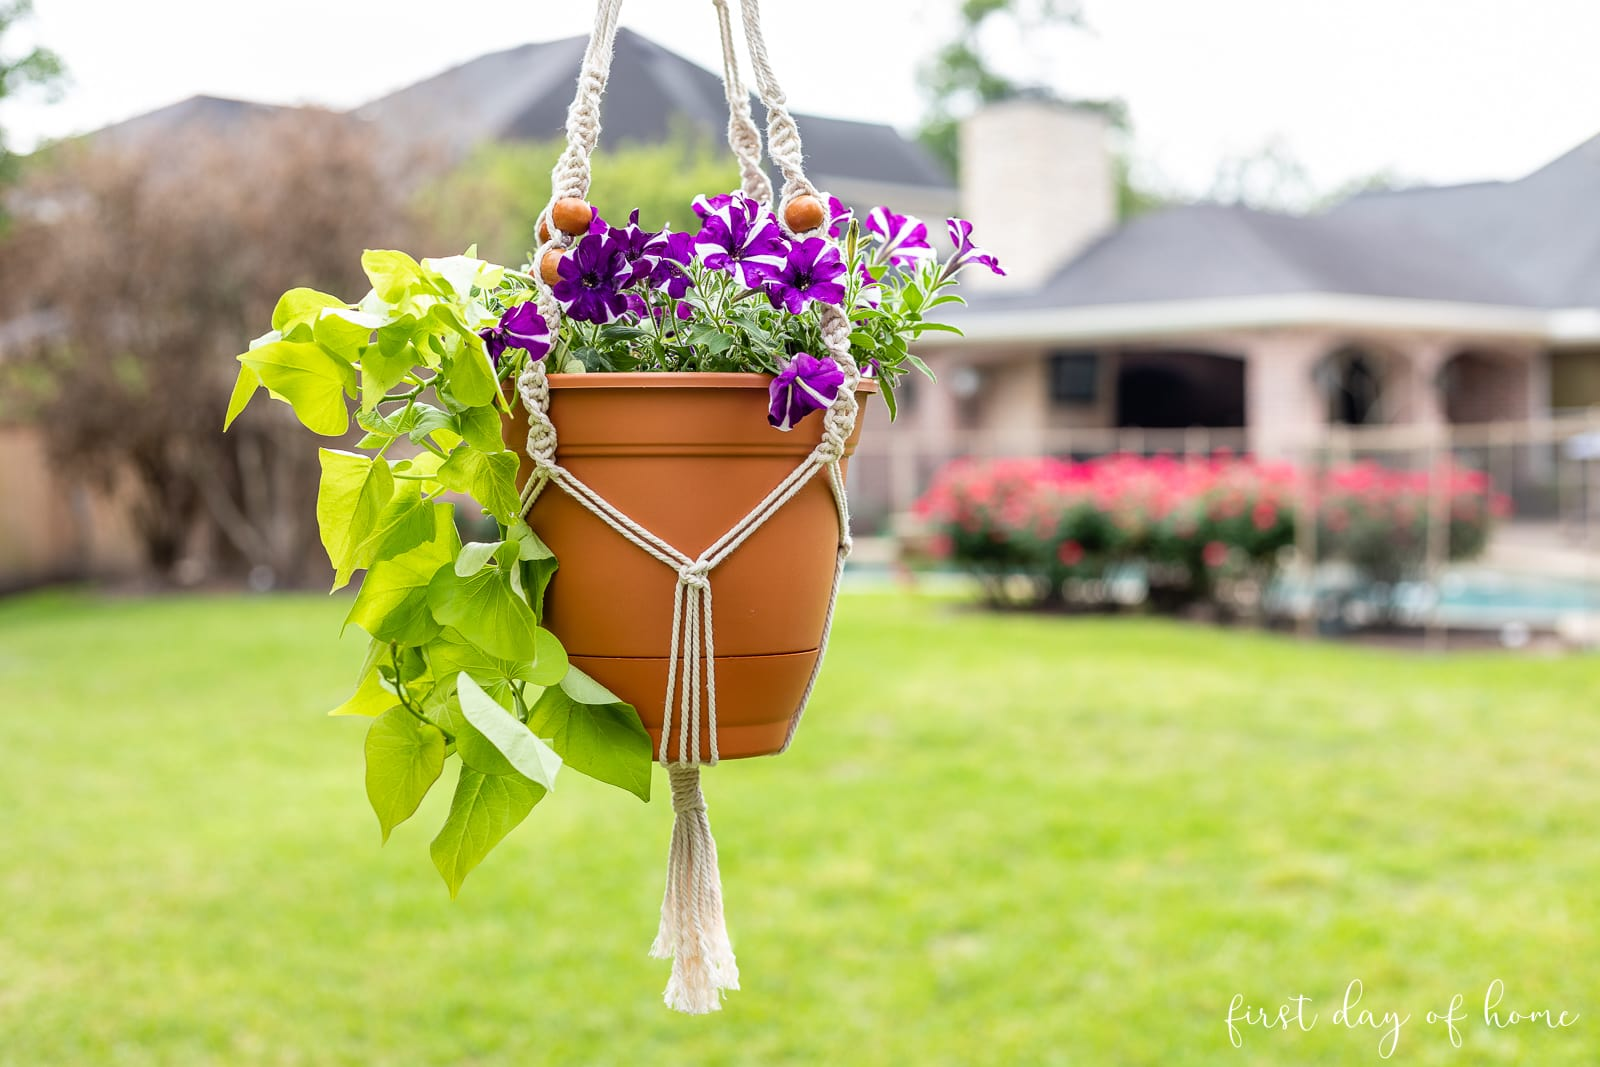 Macrame plant hanger with trailing vine and petunias